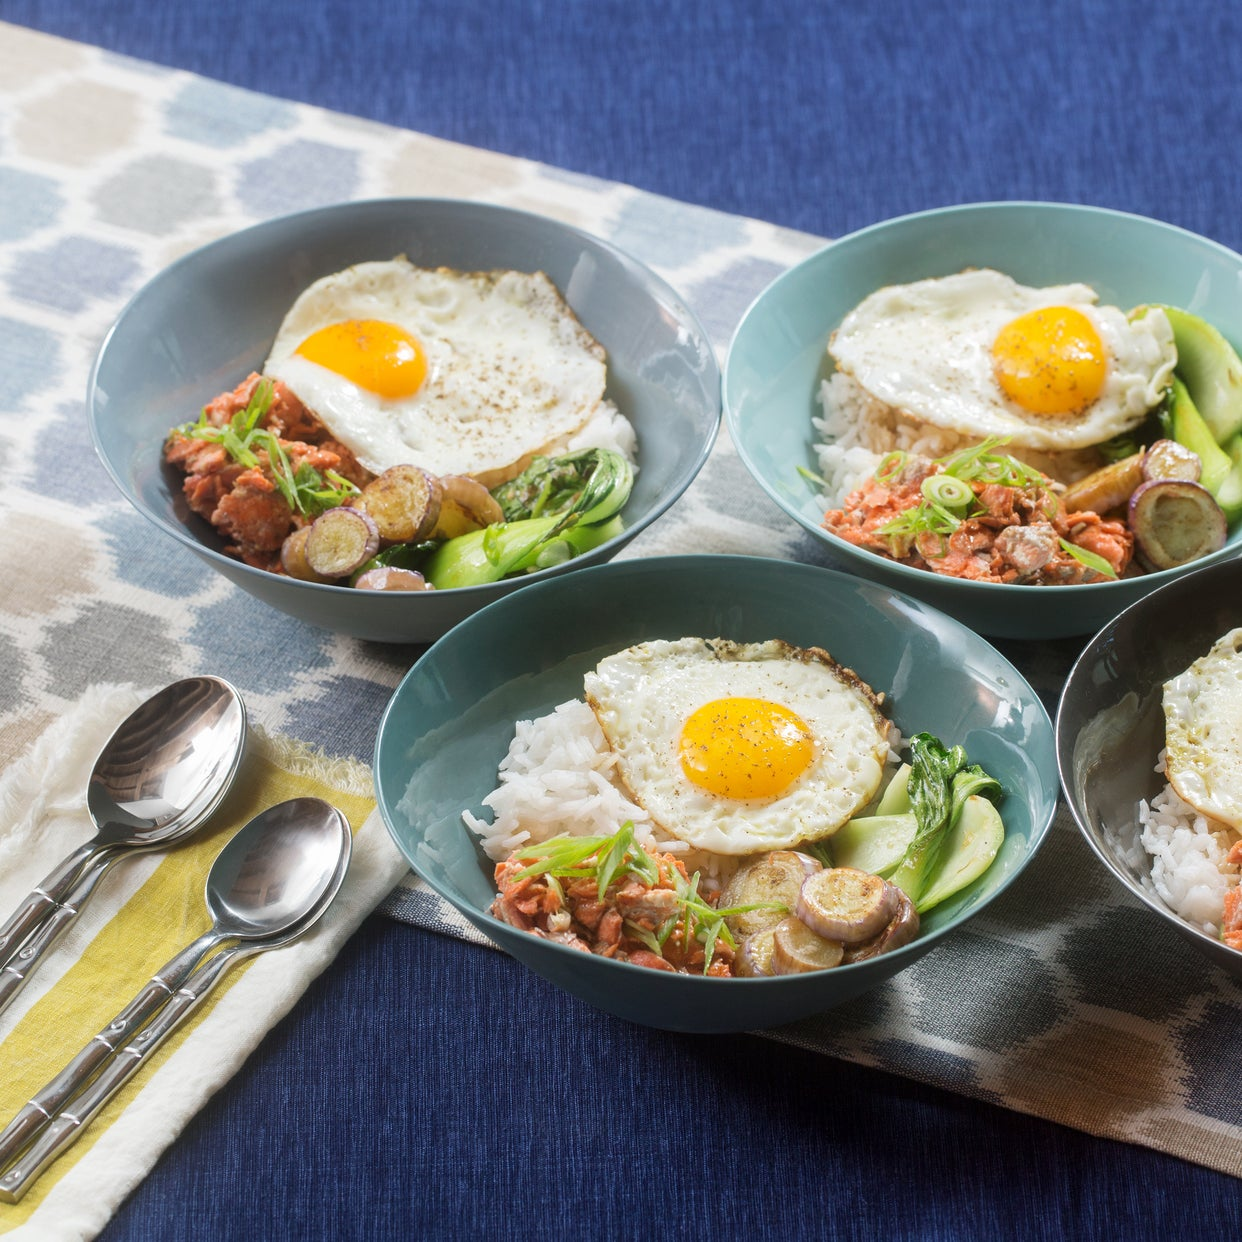 Sesame-Hoisin Salmon & Rice Bowls with Fairy Tale Eggplants & Sunny Side-Up Eggs